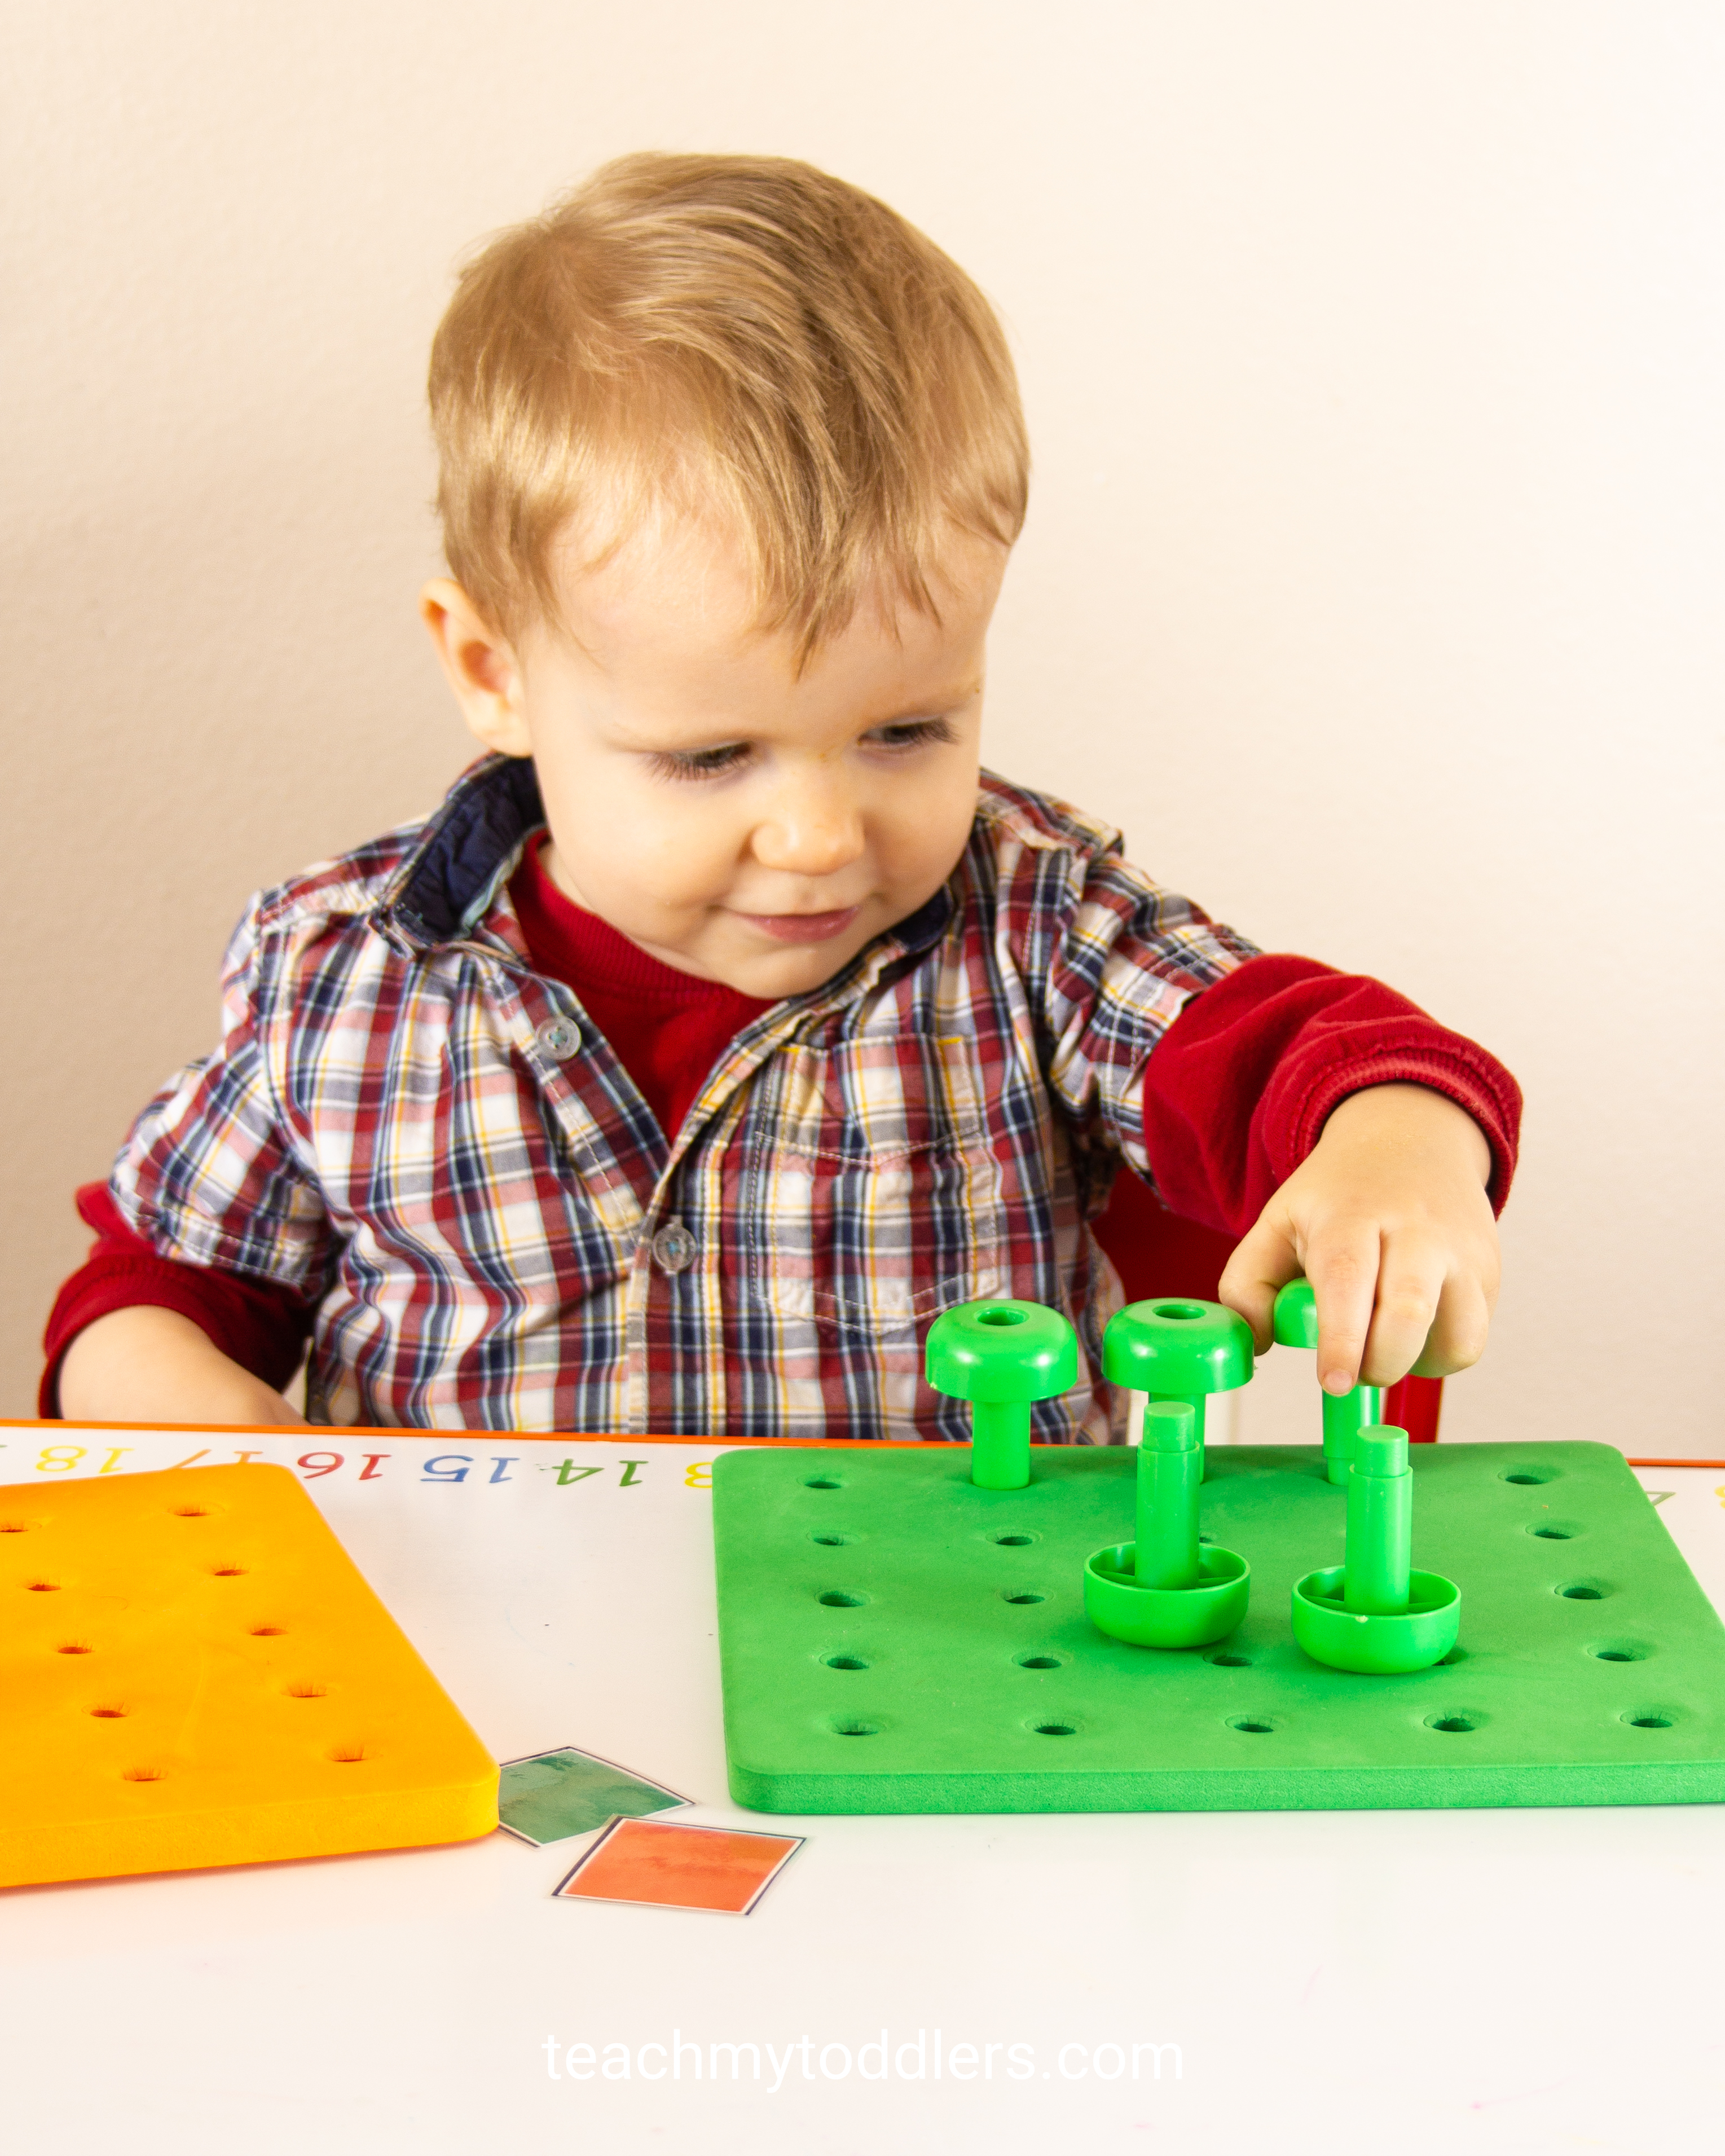 These pegs and peg boards will help teach your toddlers colors